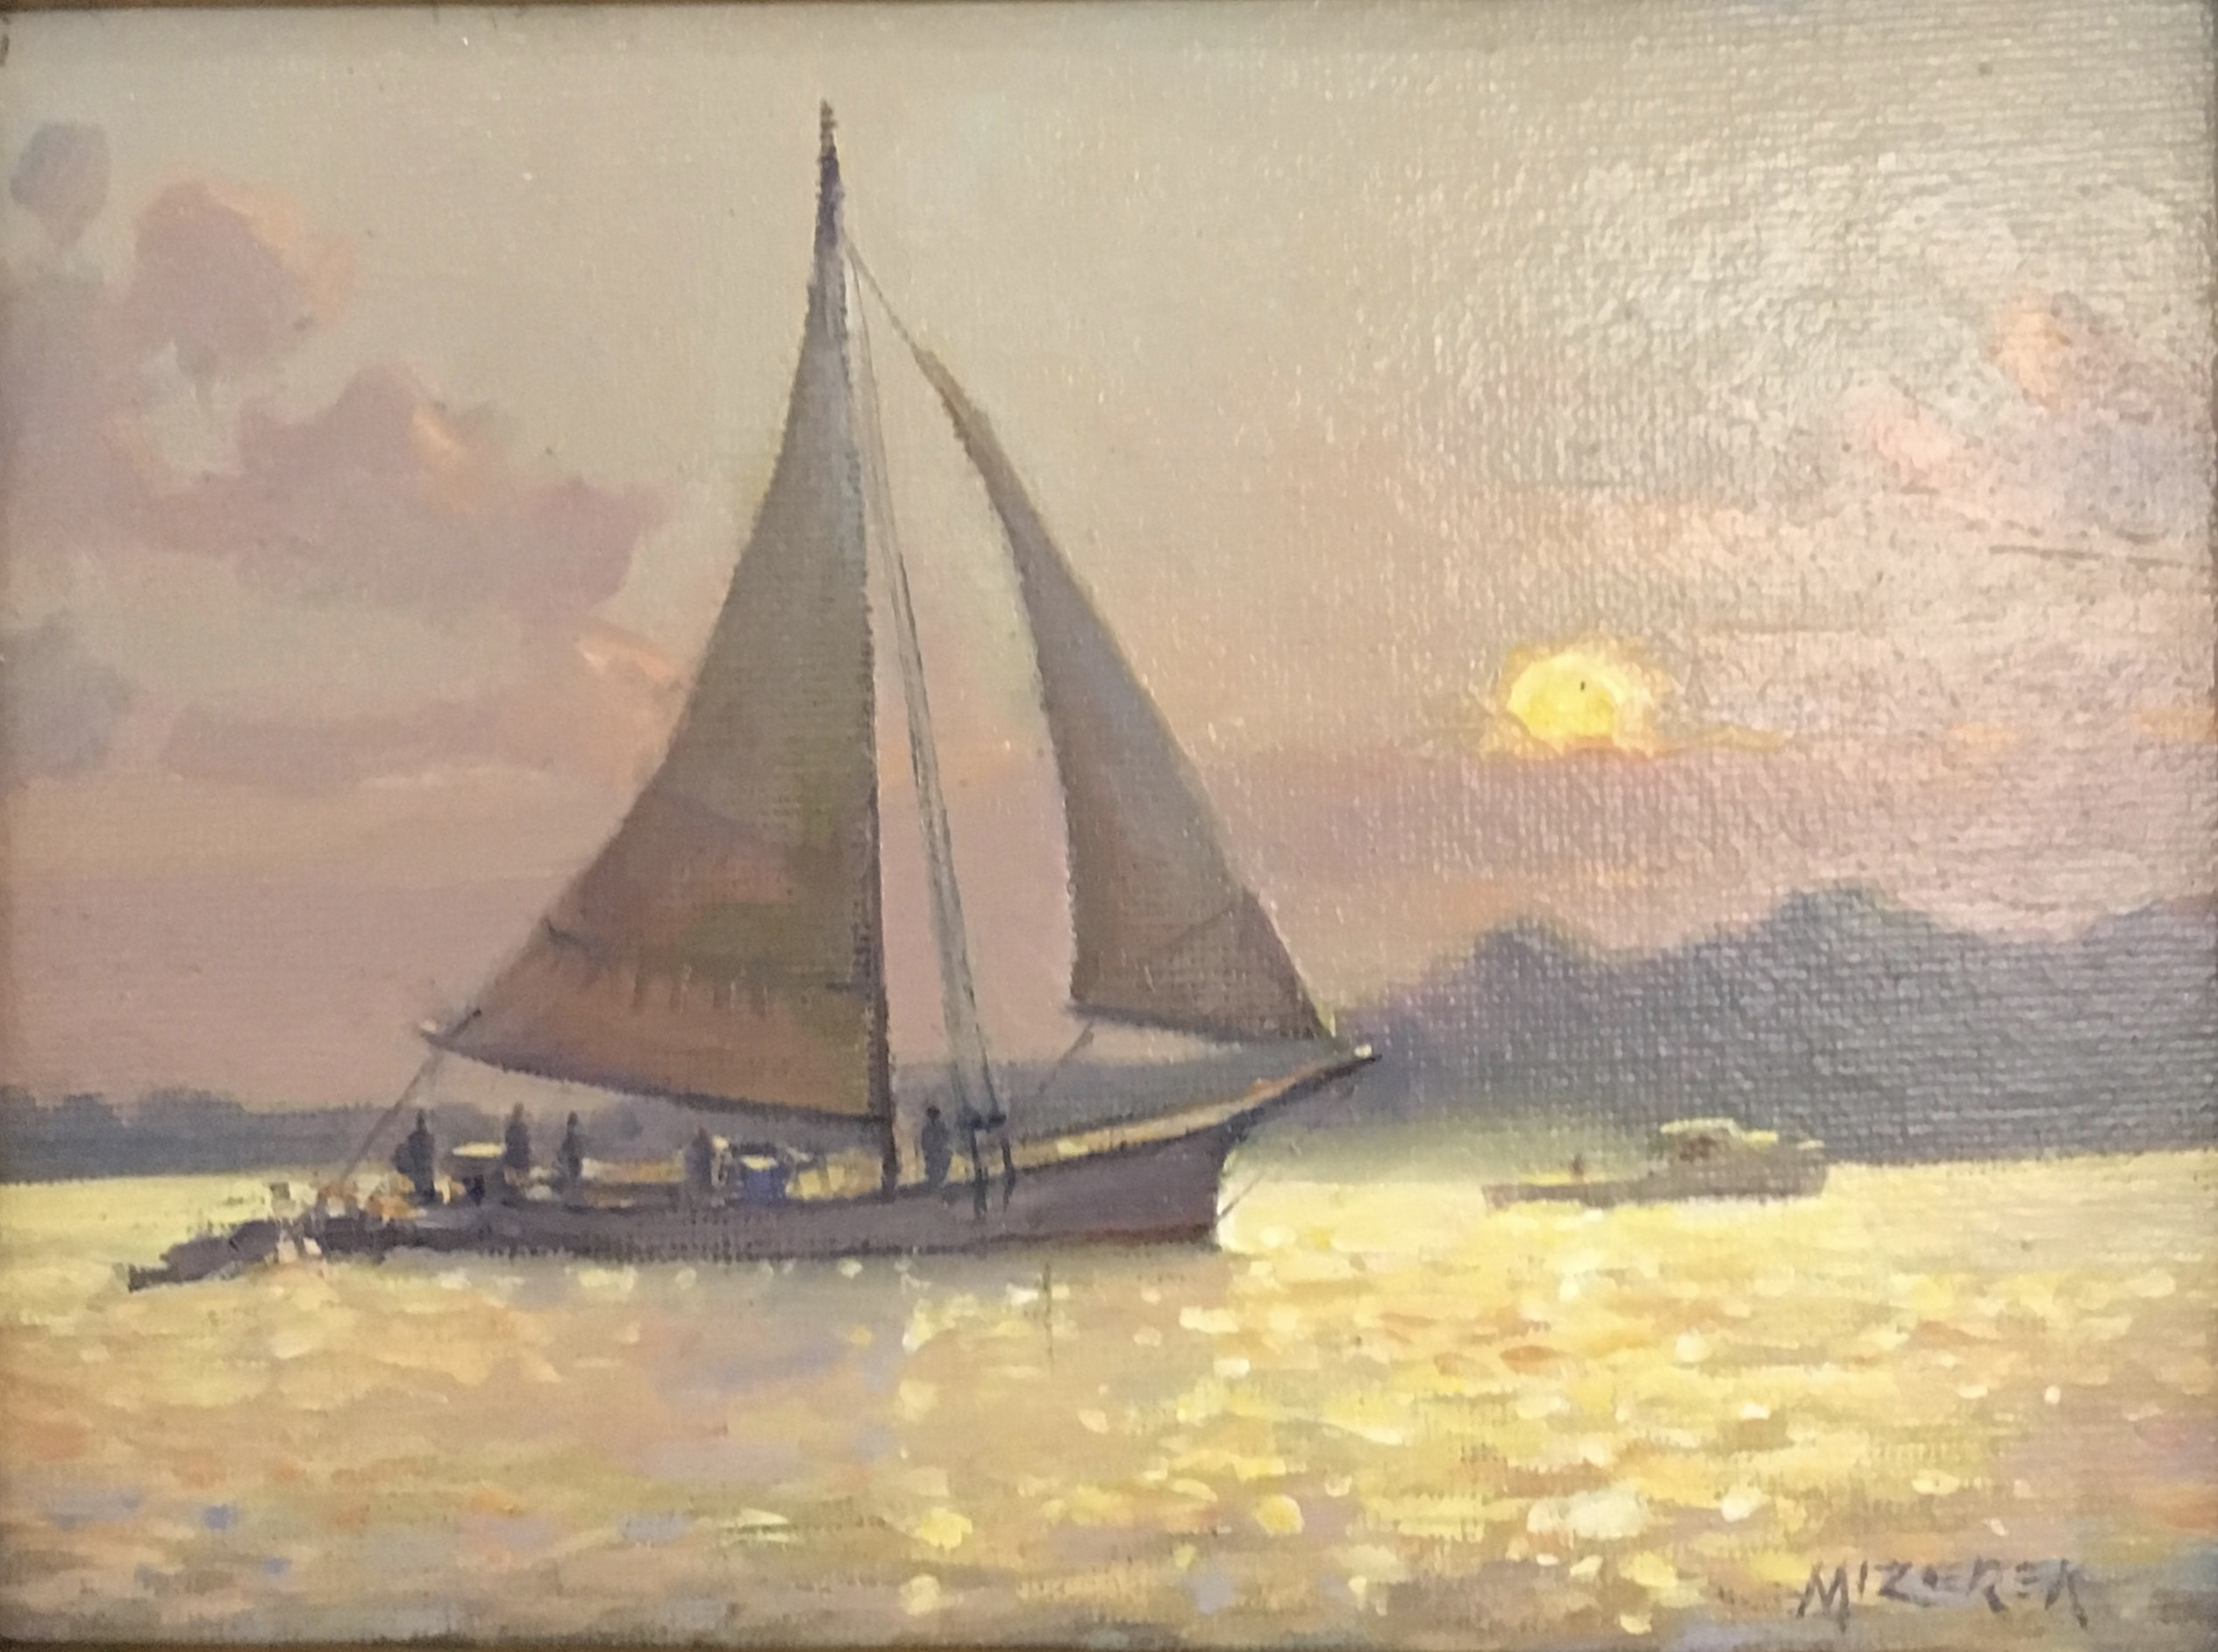 Sunset Sail-Mizerek, oil $650 6x8